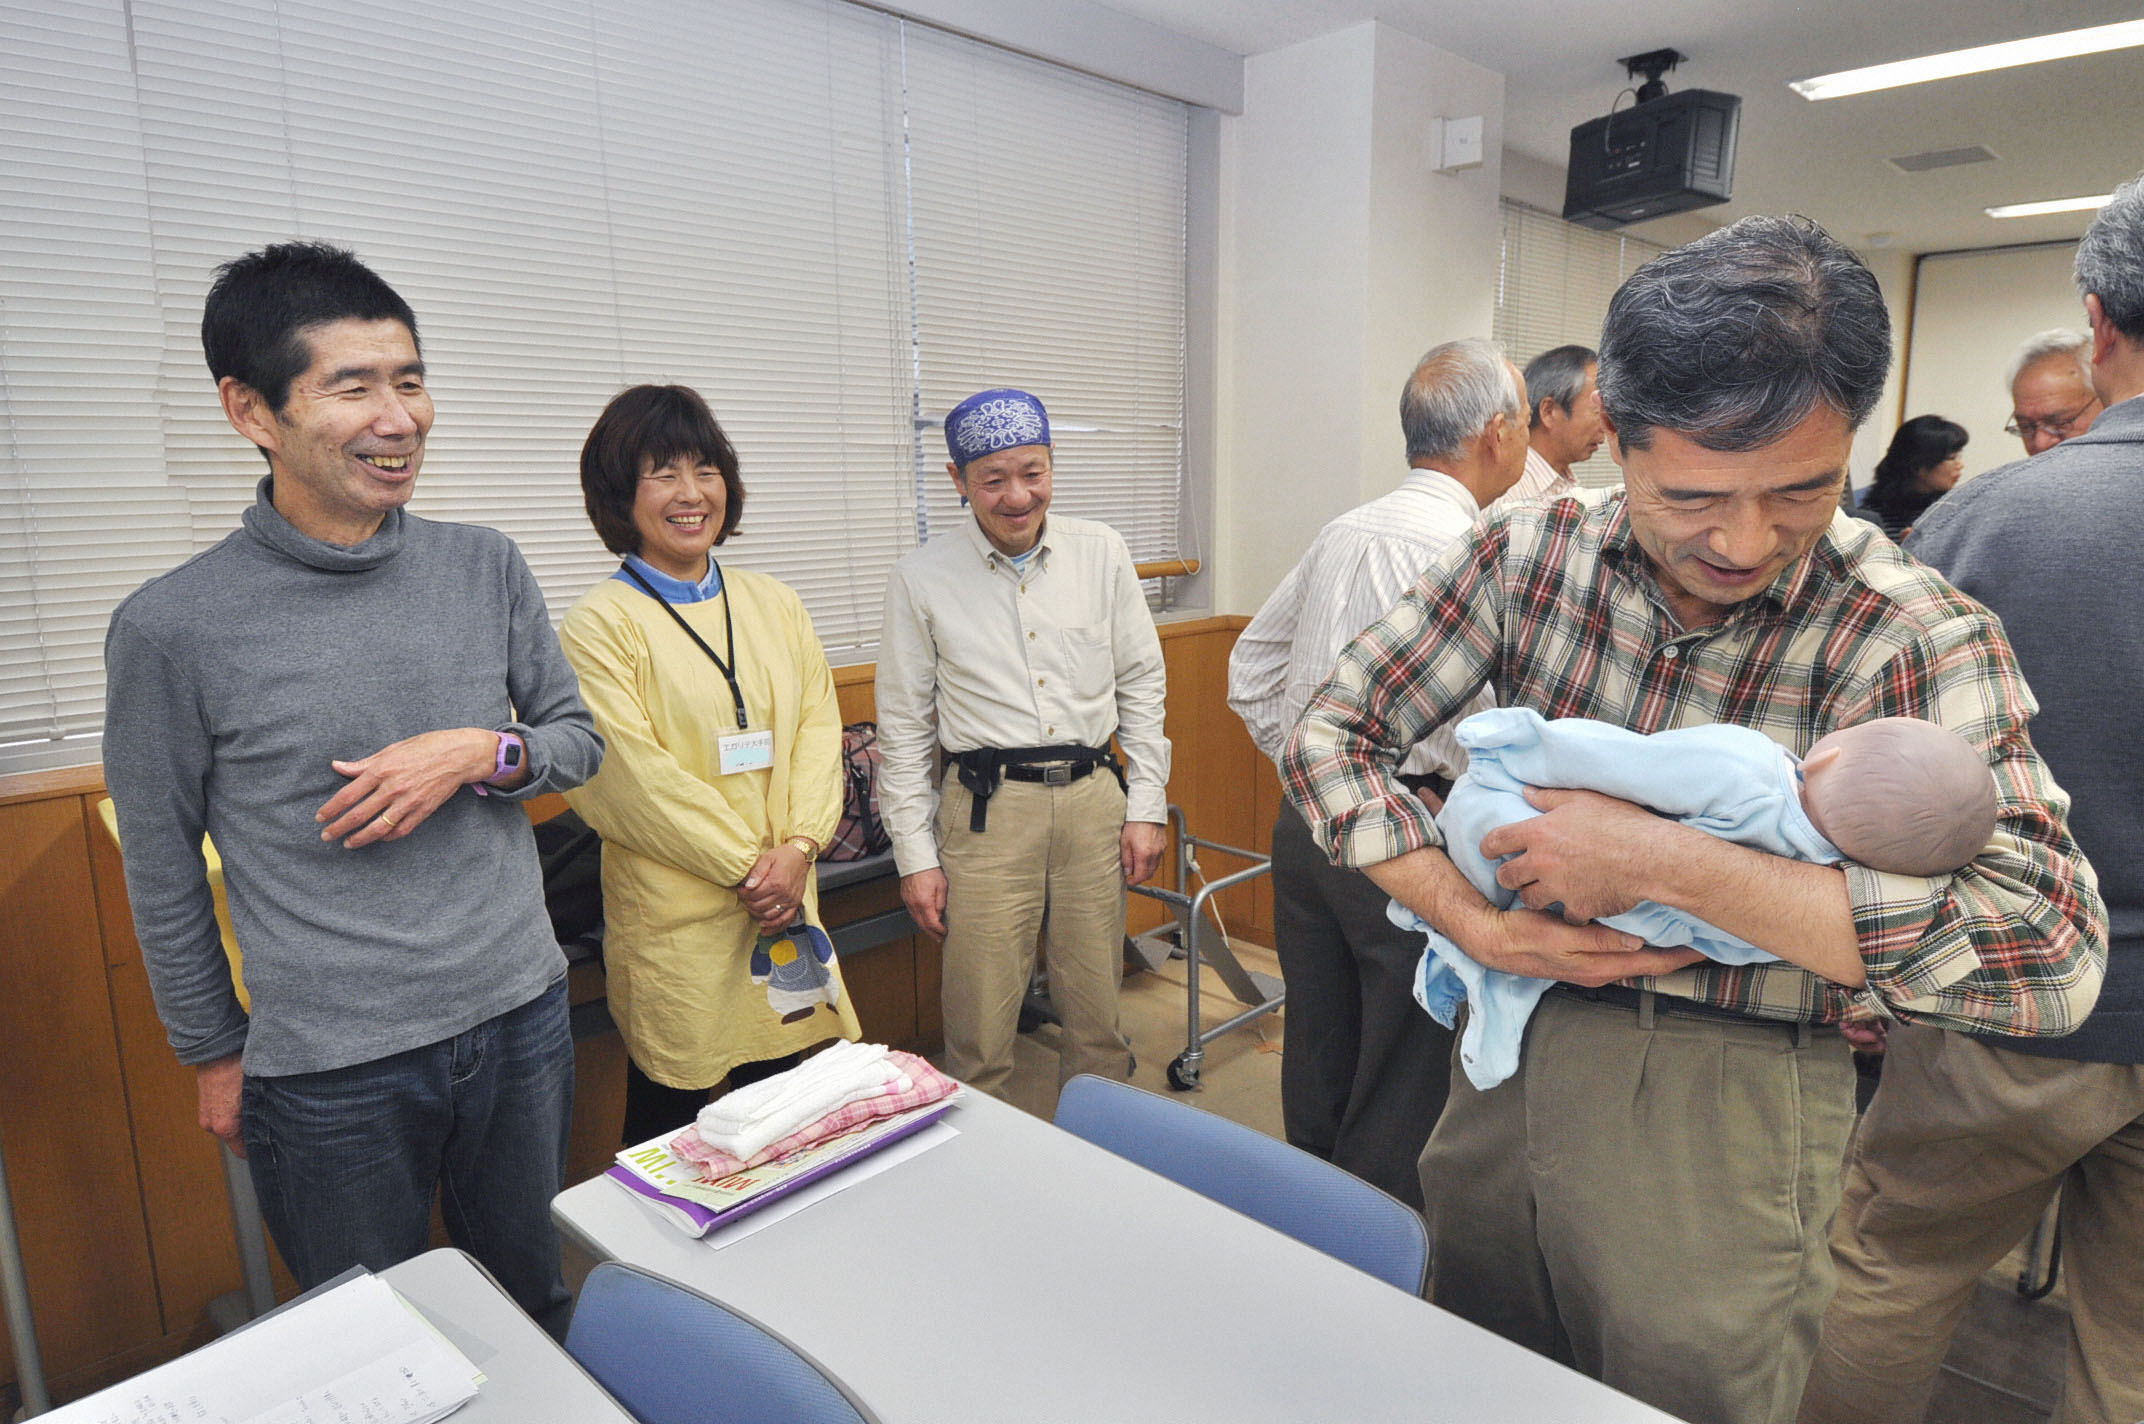 You're never too old to learn: A baby boomer uses a doll to learn how to hold a baby in a program to help older men learn the basics of nurturing babies.   KYODO